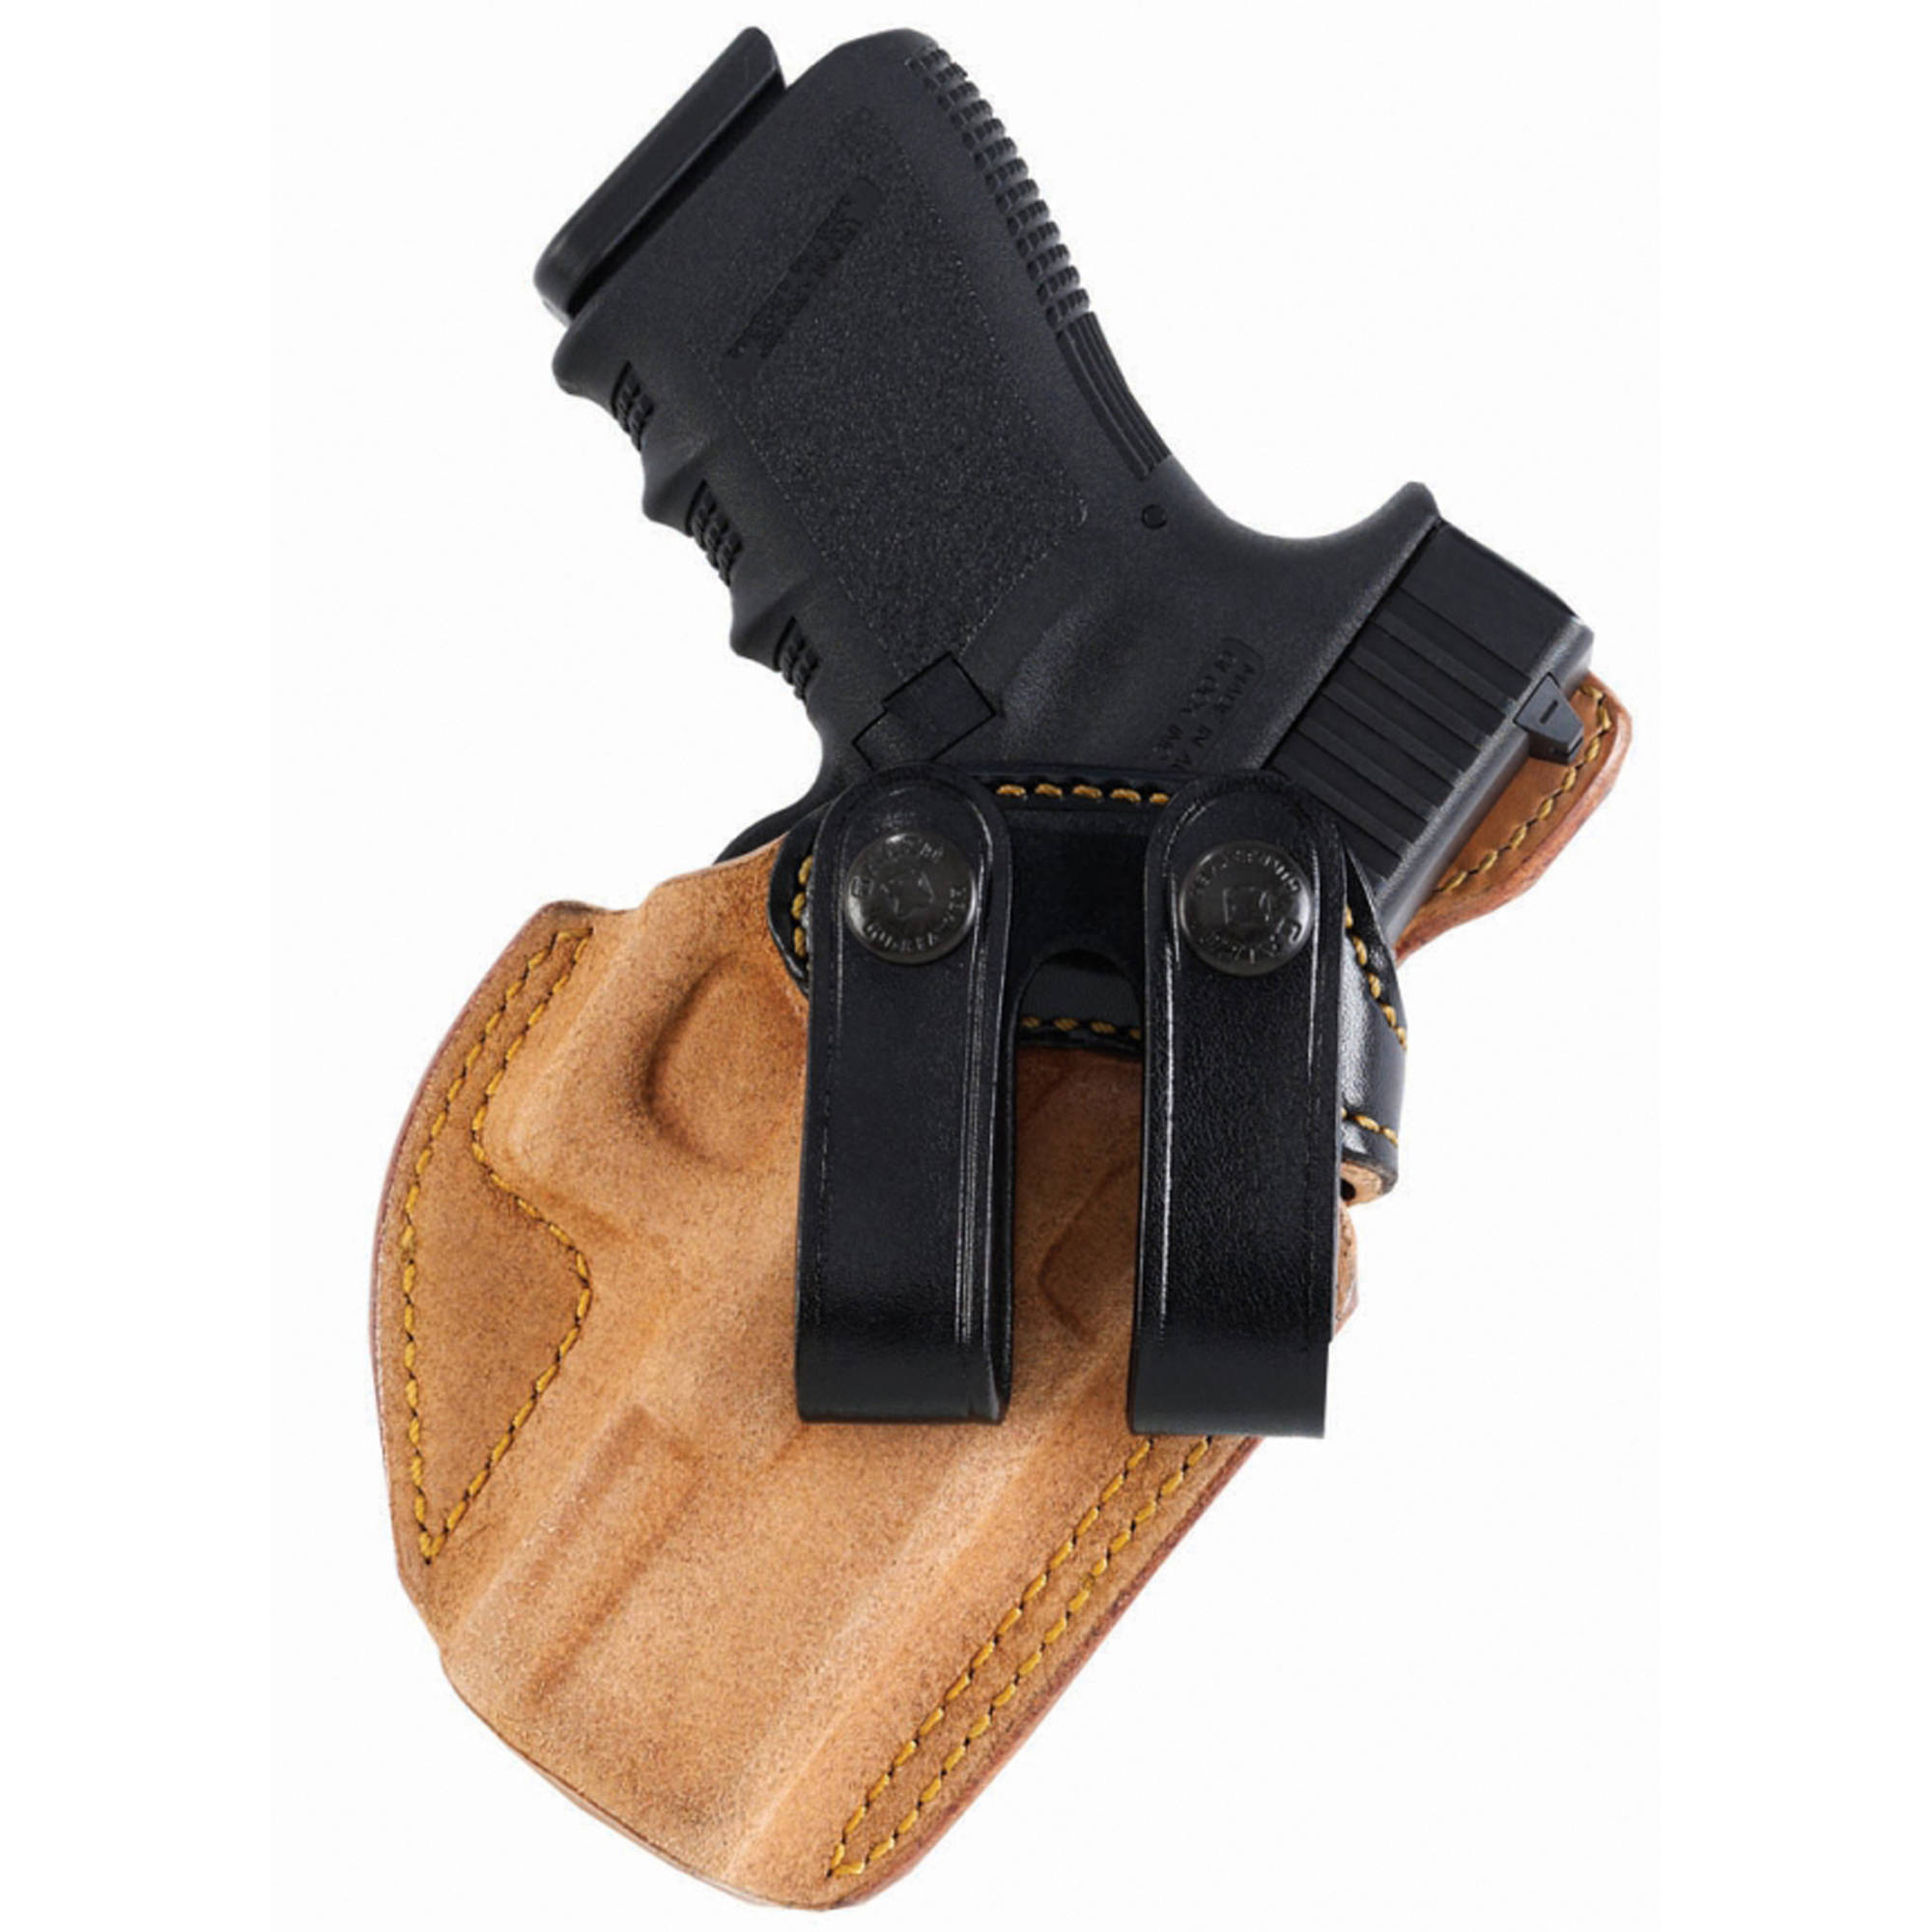 """Galco Royal Guard Holster, Fits Colt Commander with 4.25"""" Barrel, Right Hand, Black Leather by Galco"""